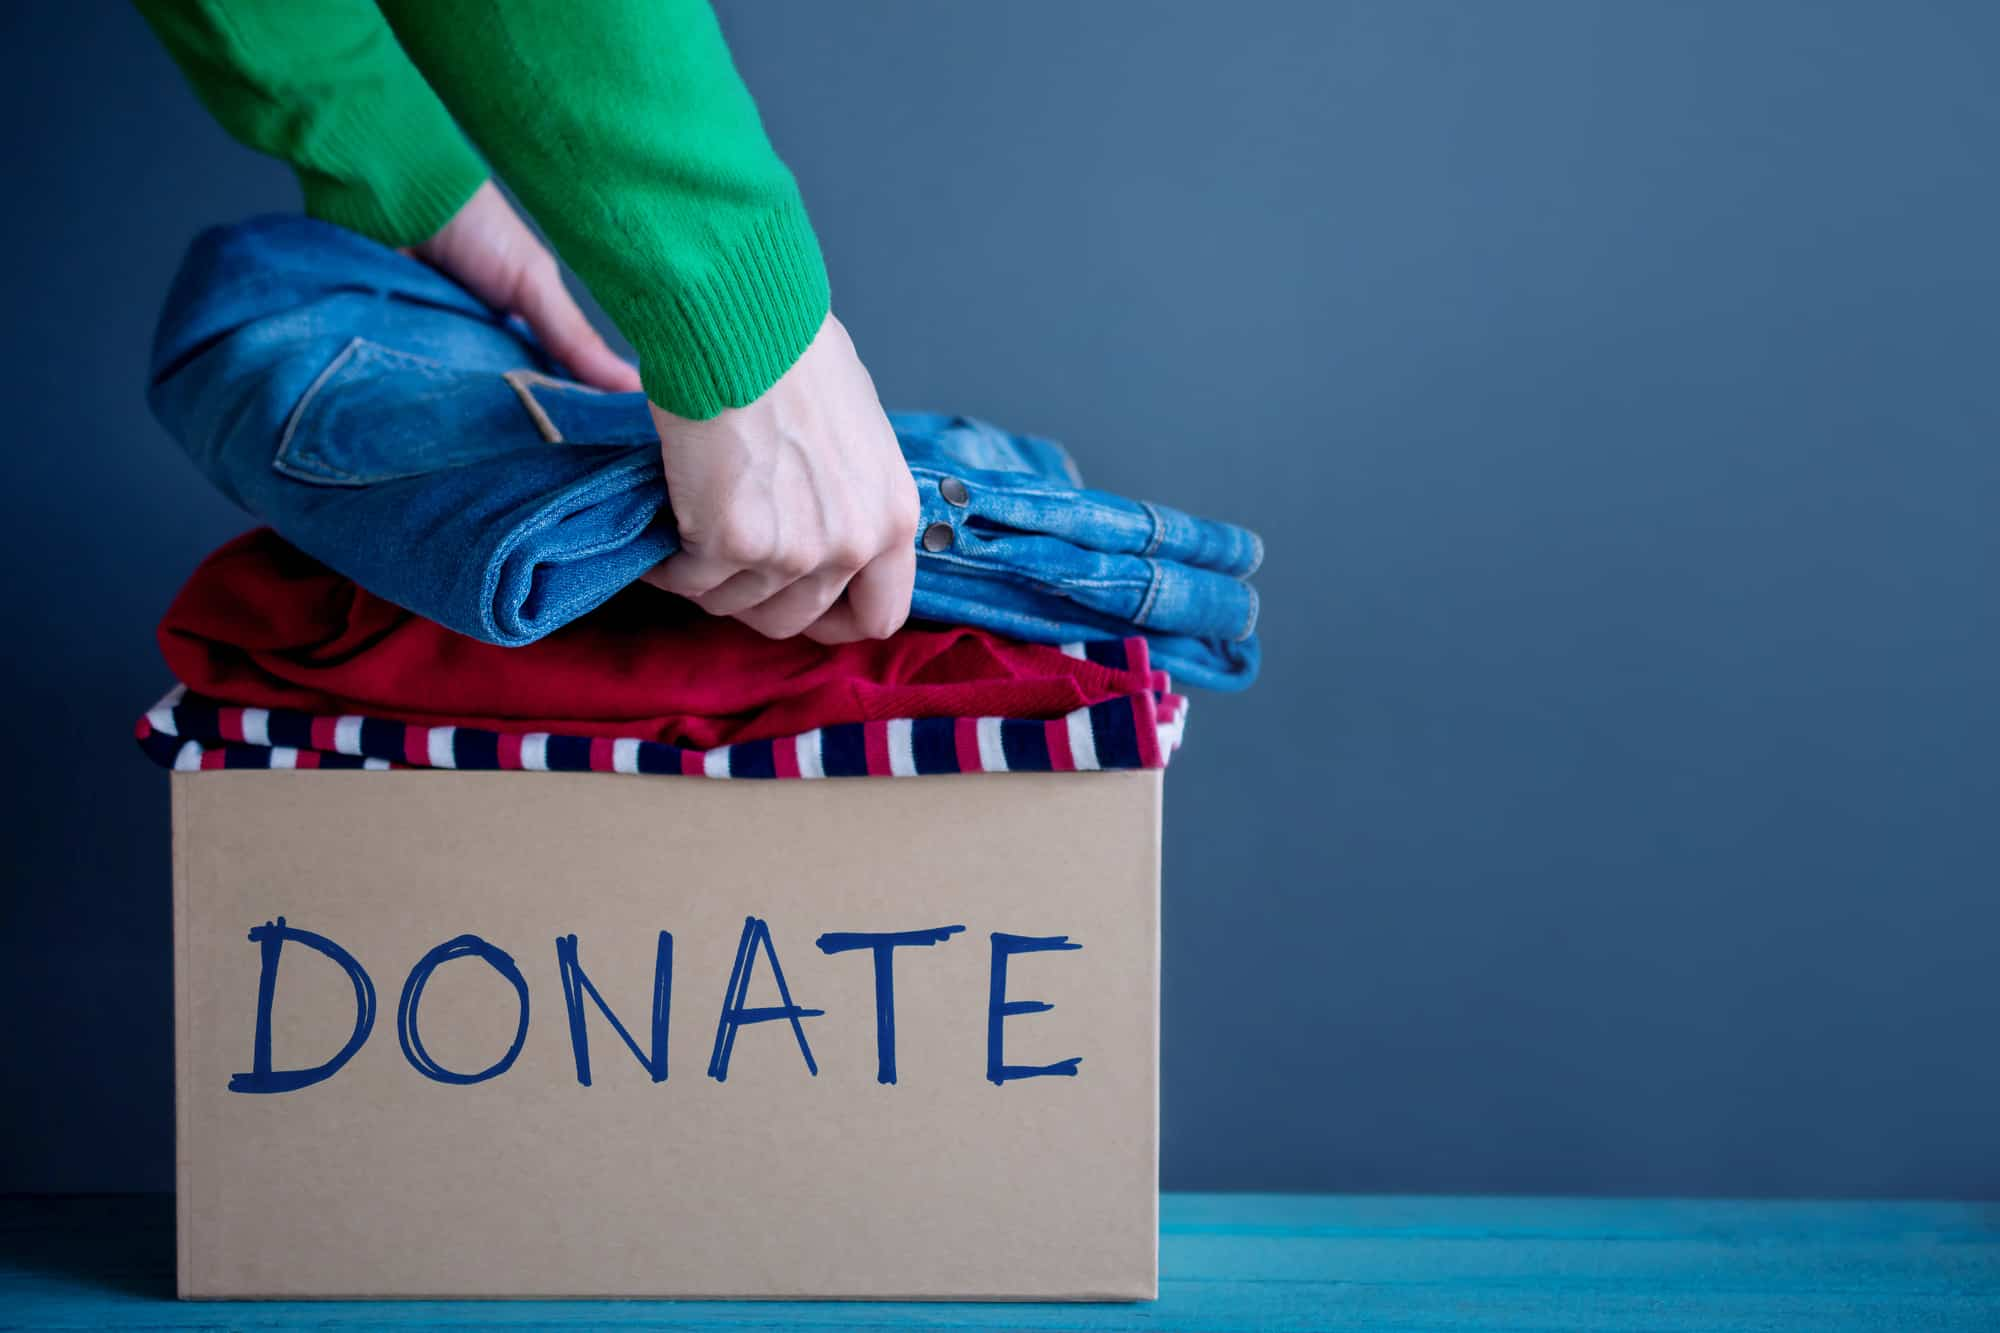 Donation Concept - Woman Preparing her Used Old Clothes into a Donate Box